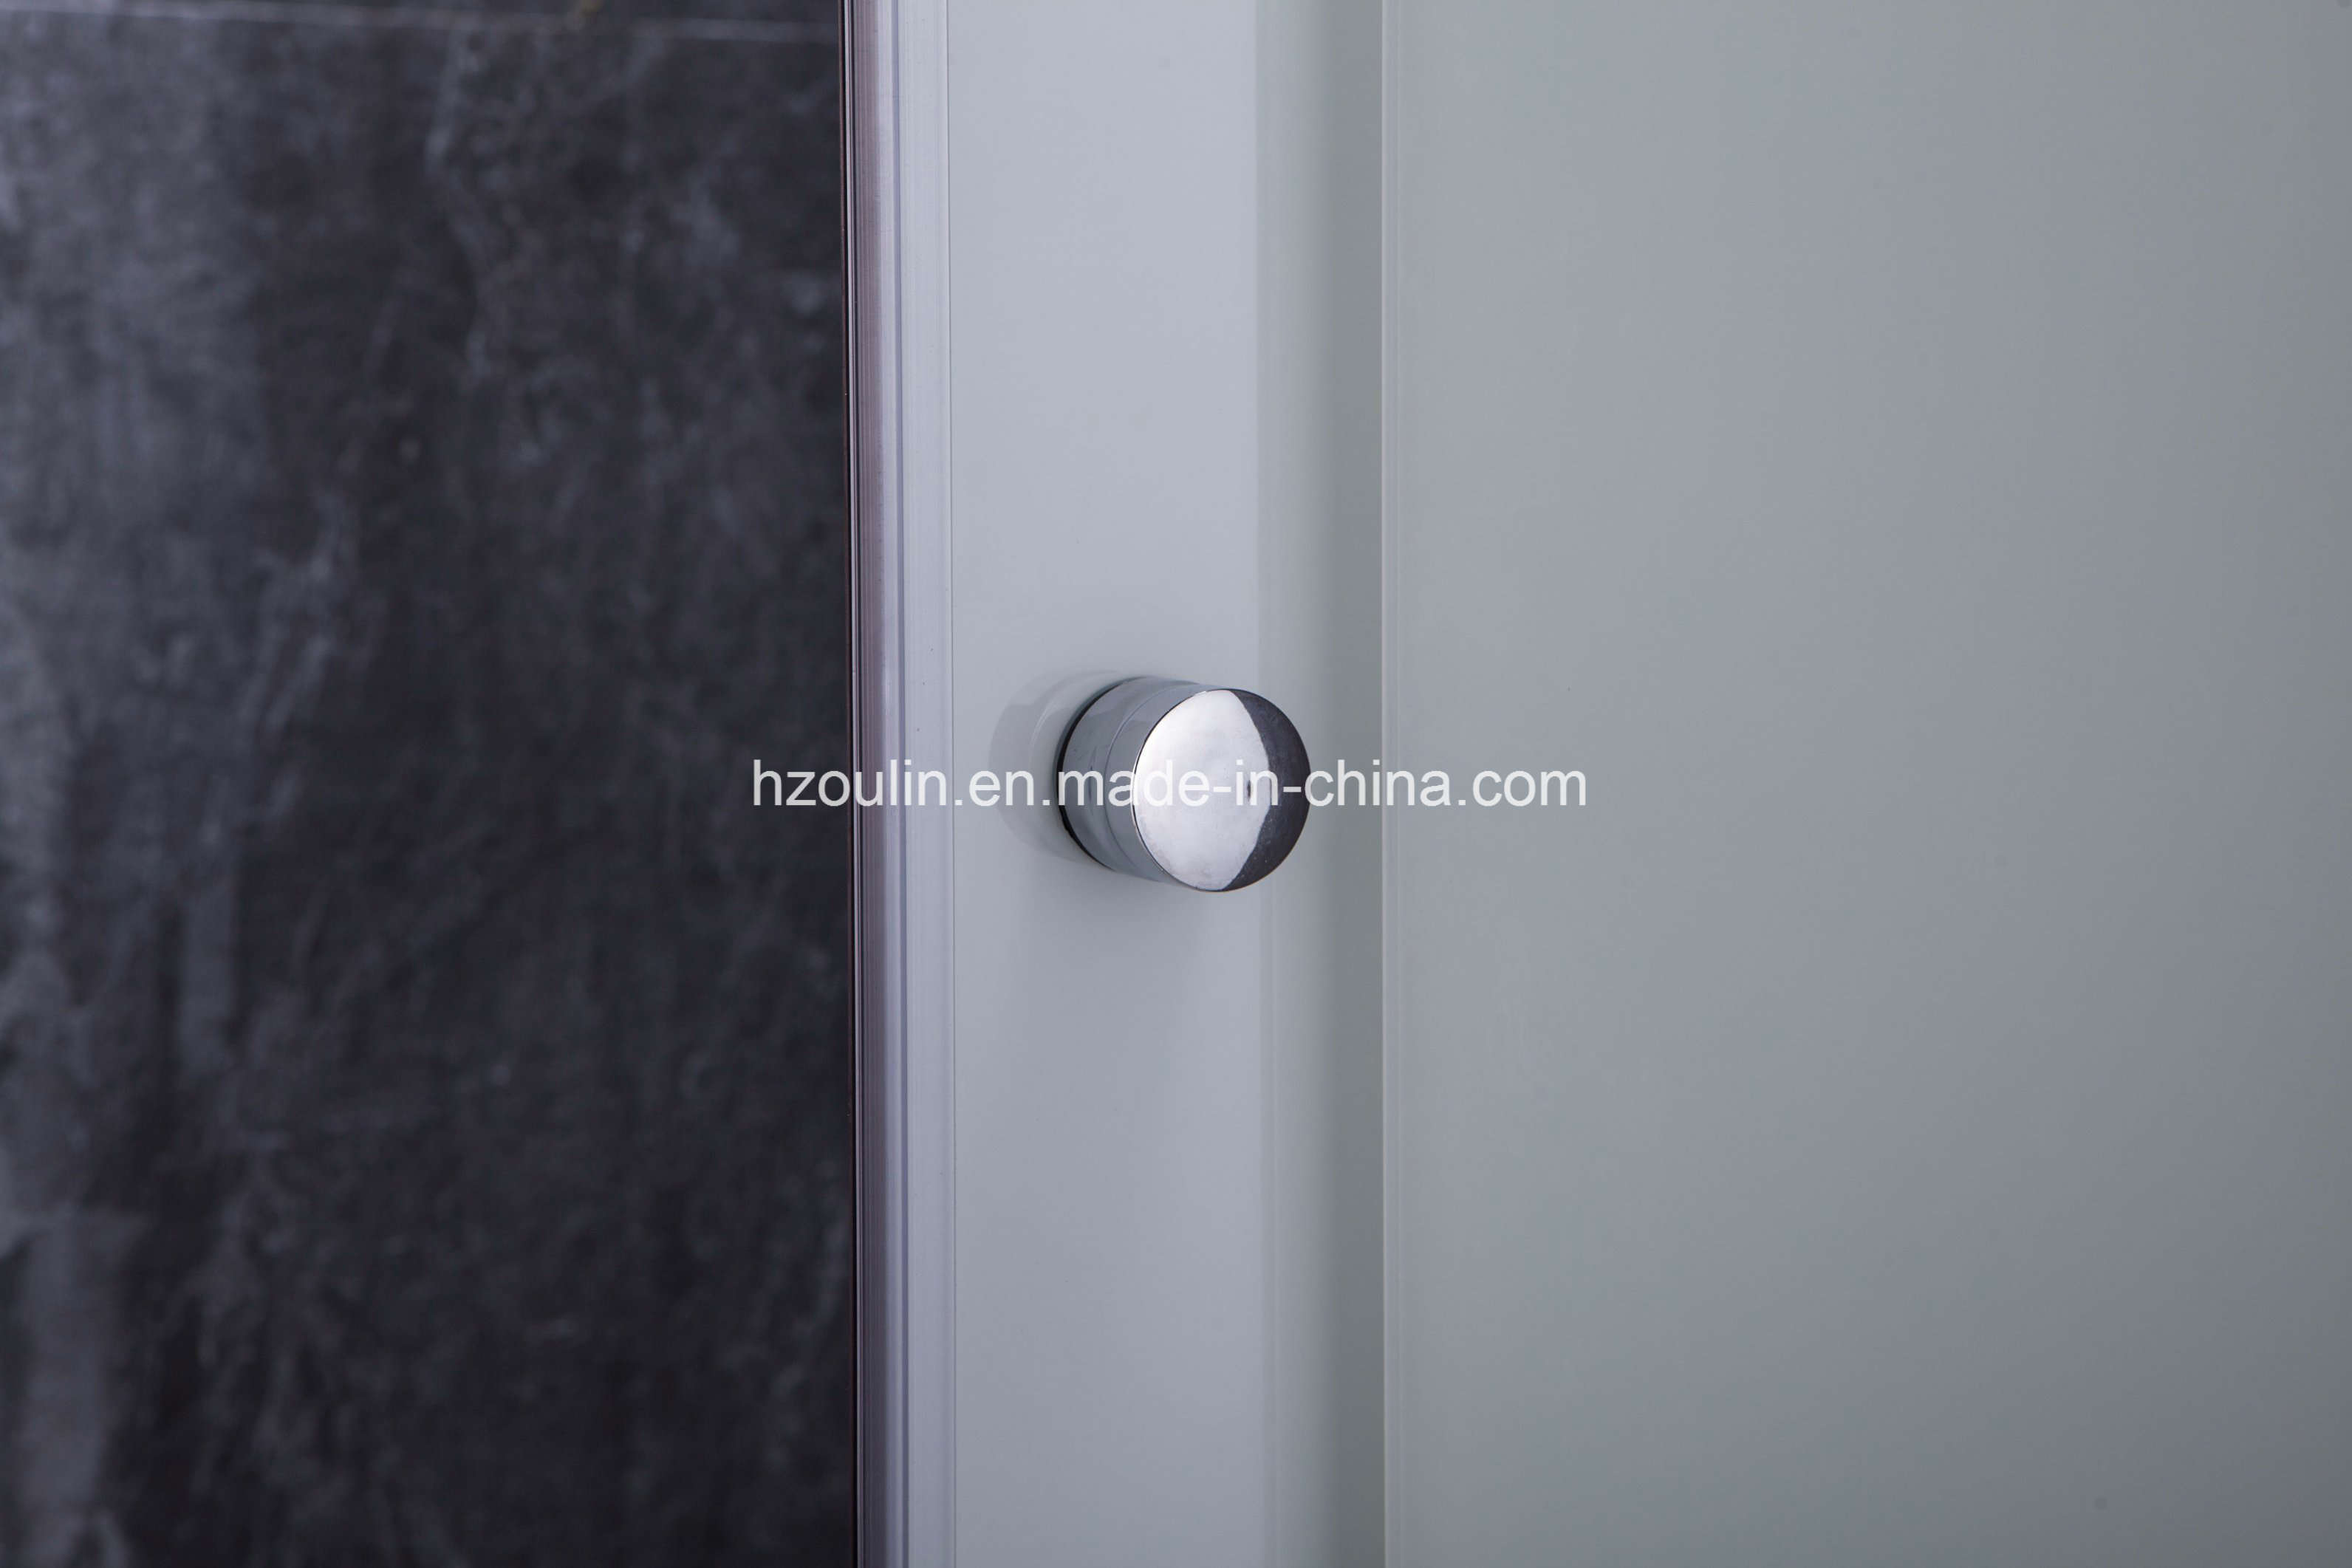 China Square Shower Enclosure With Extension Frame Photos Pictures